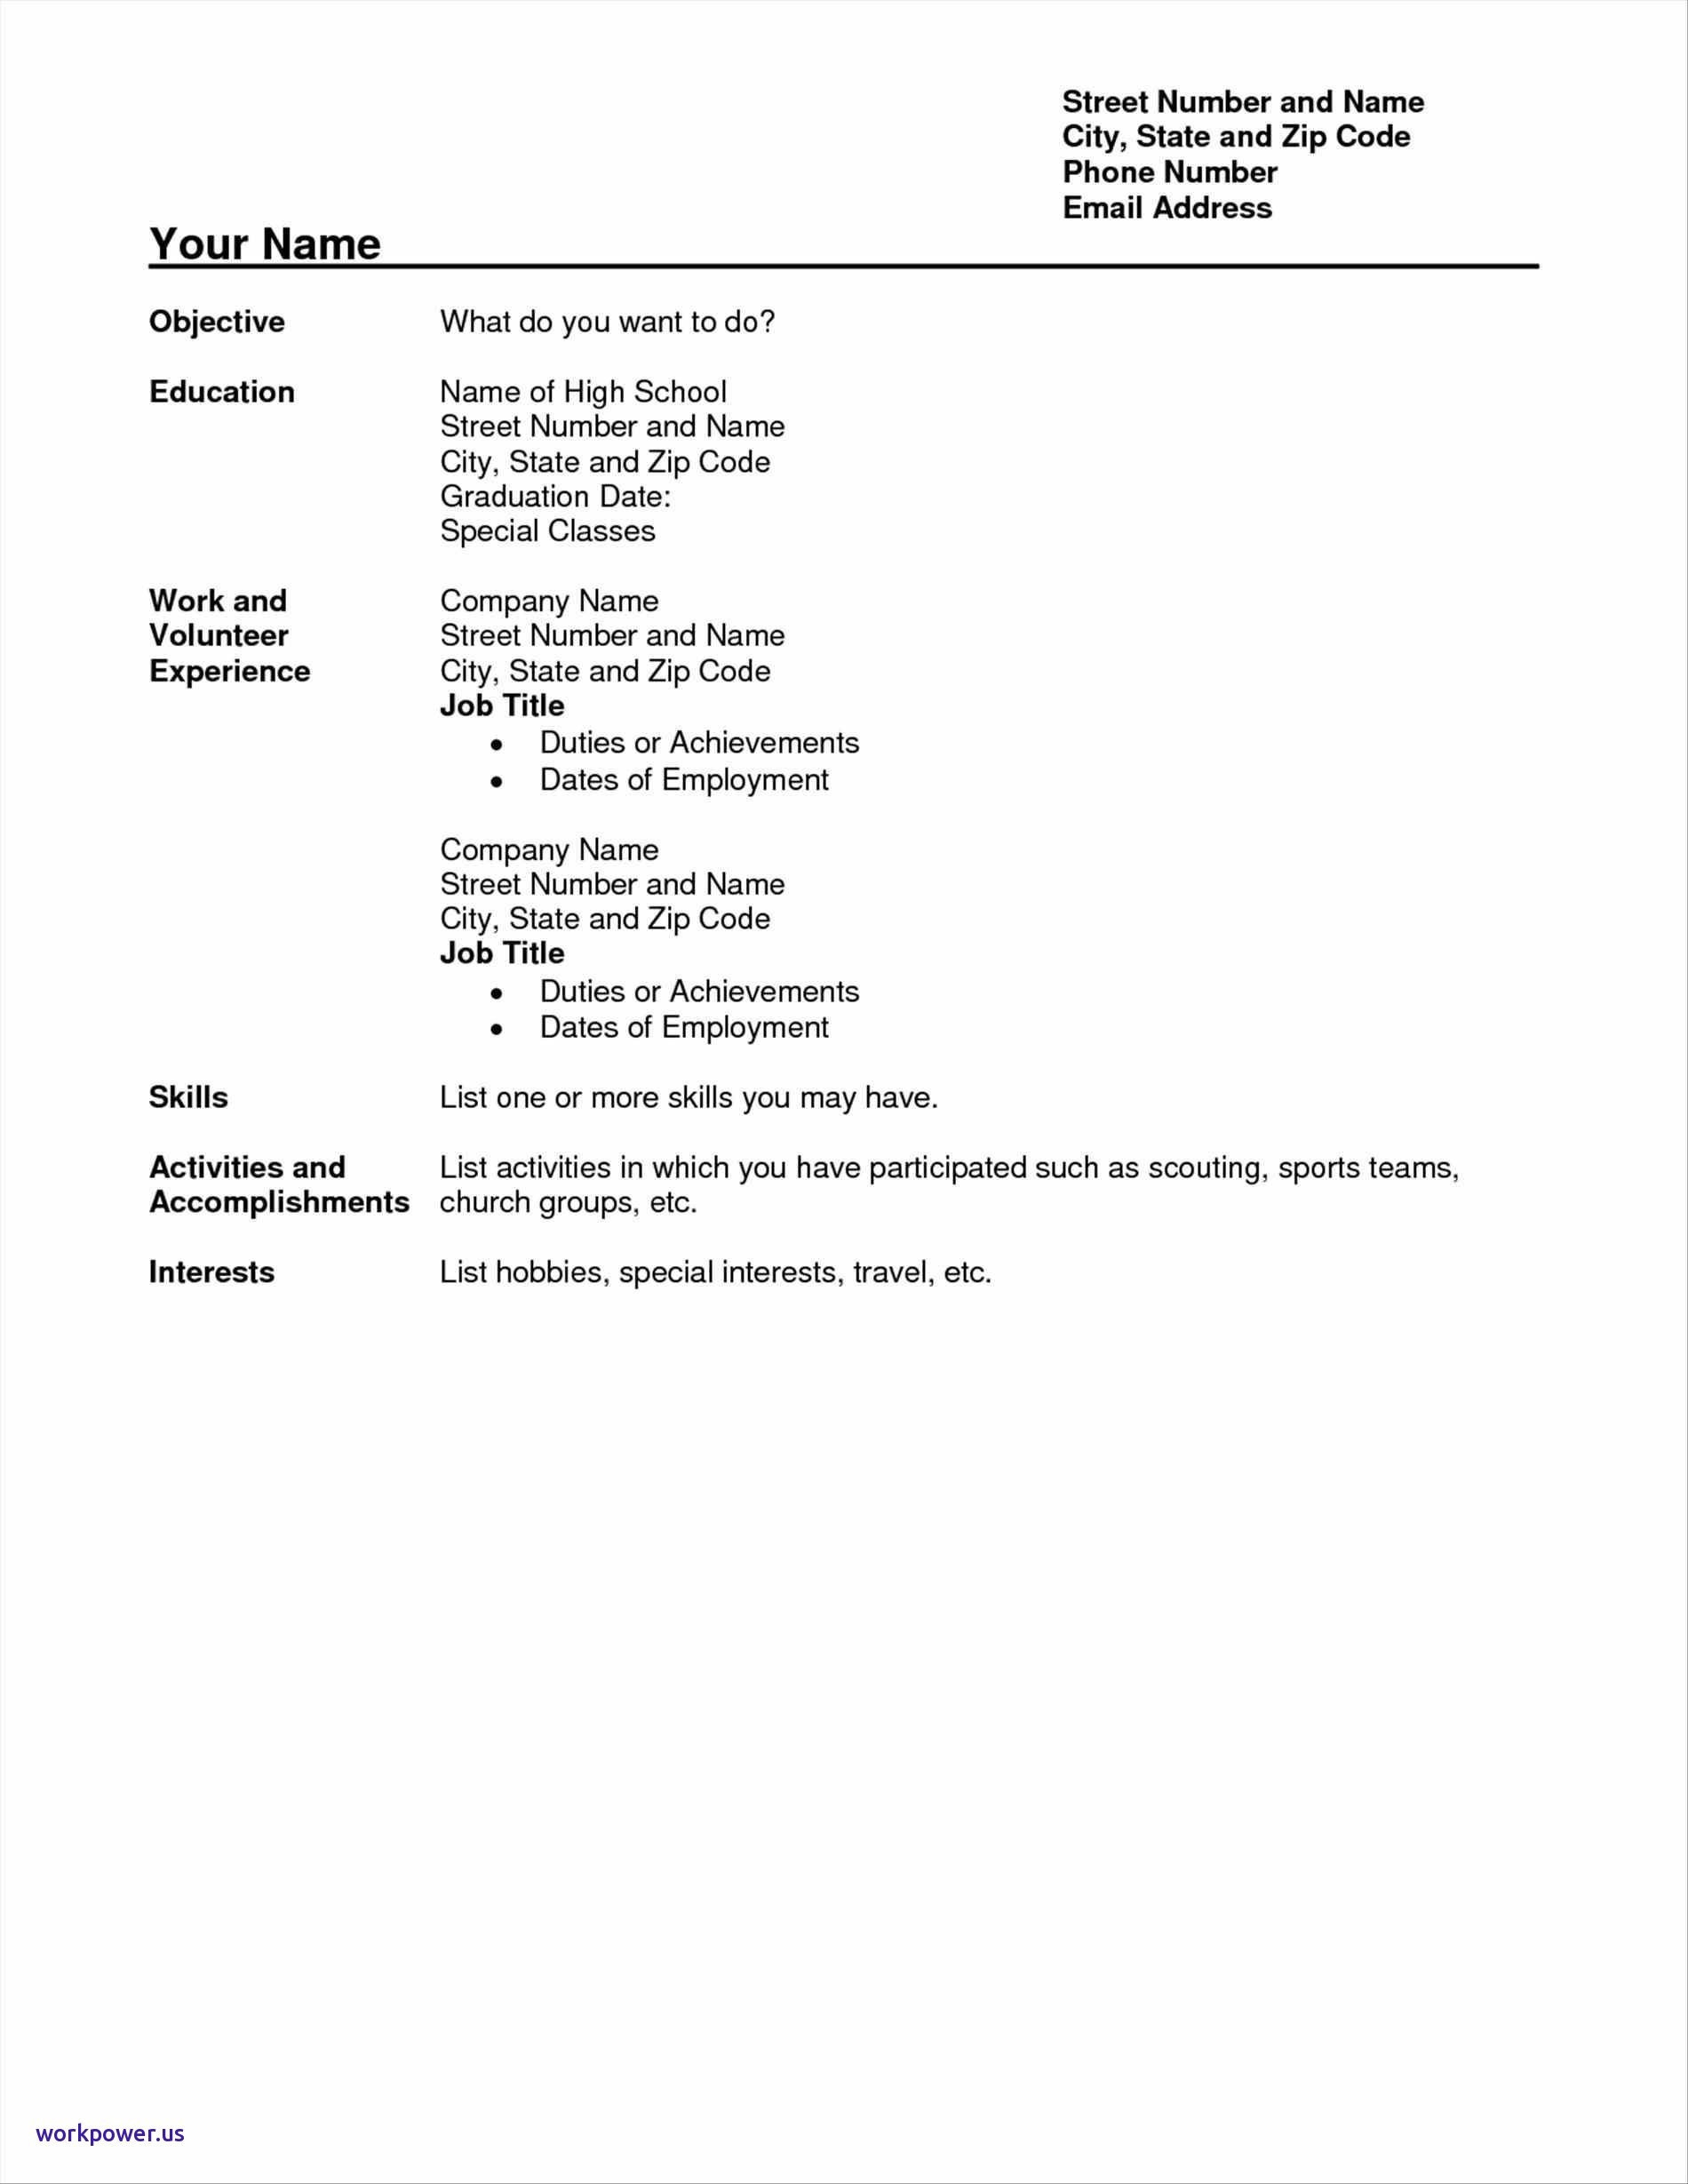 High School Resume Template Pdf - Resume Template for High School Student with No Work Experience